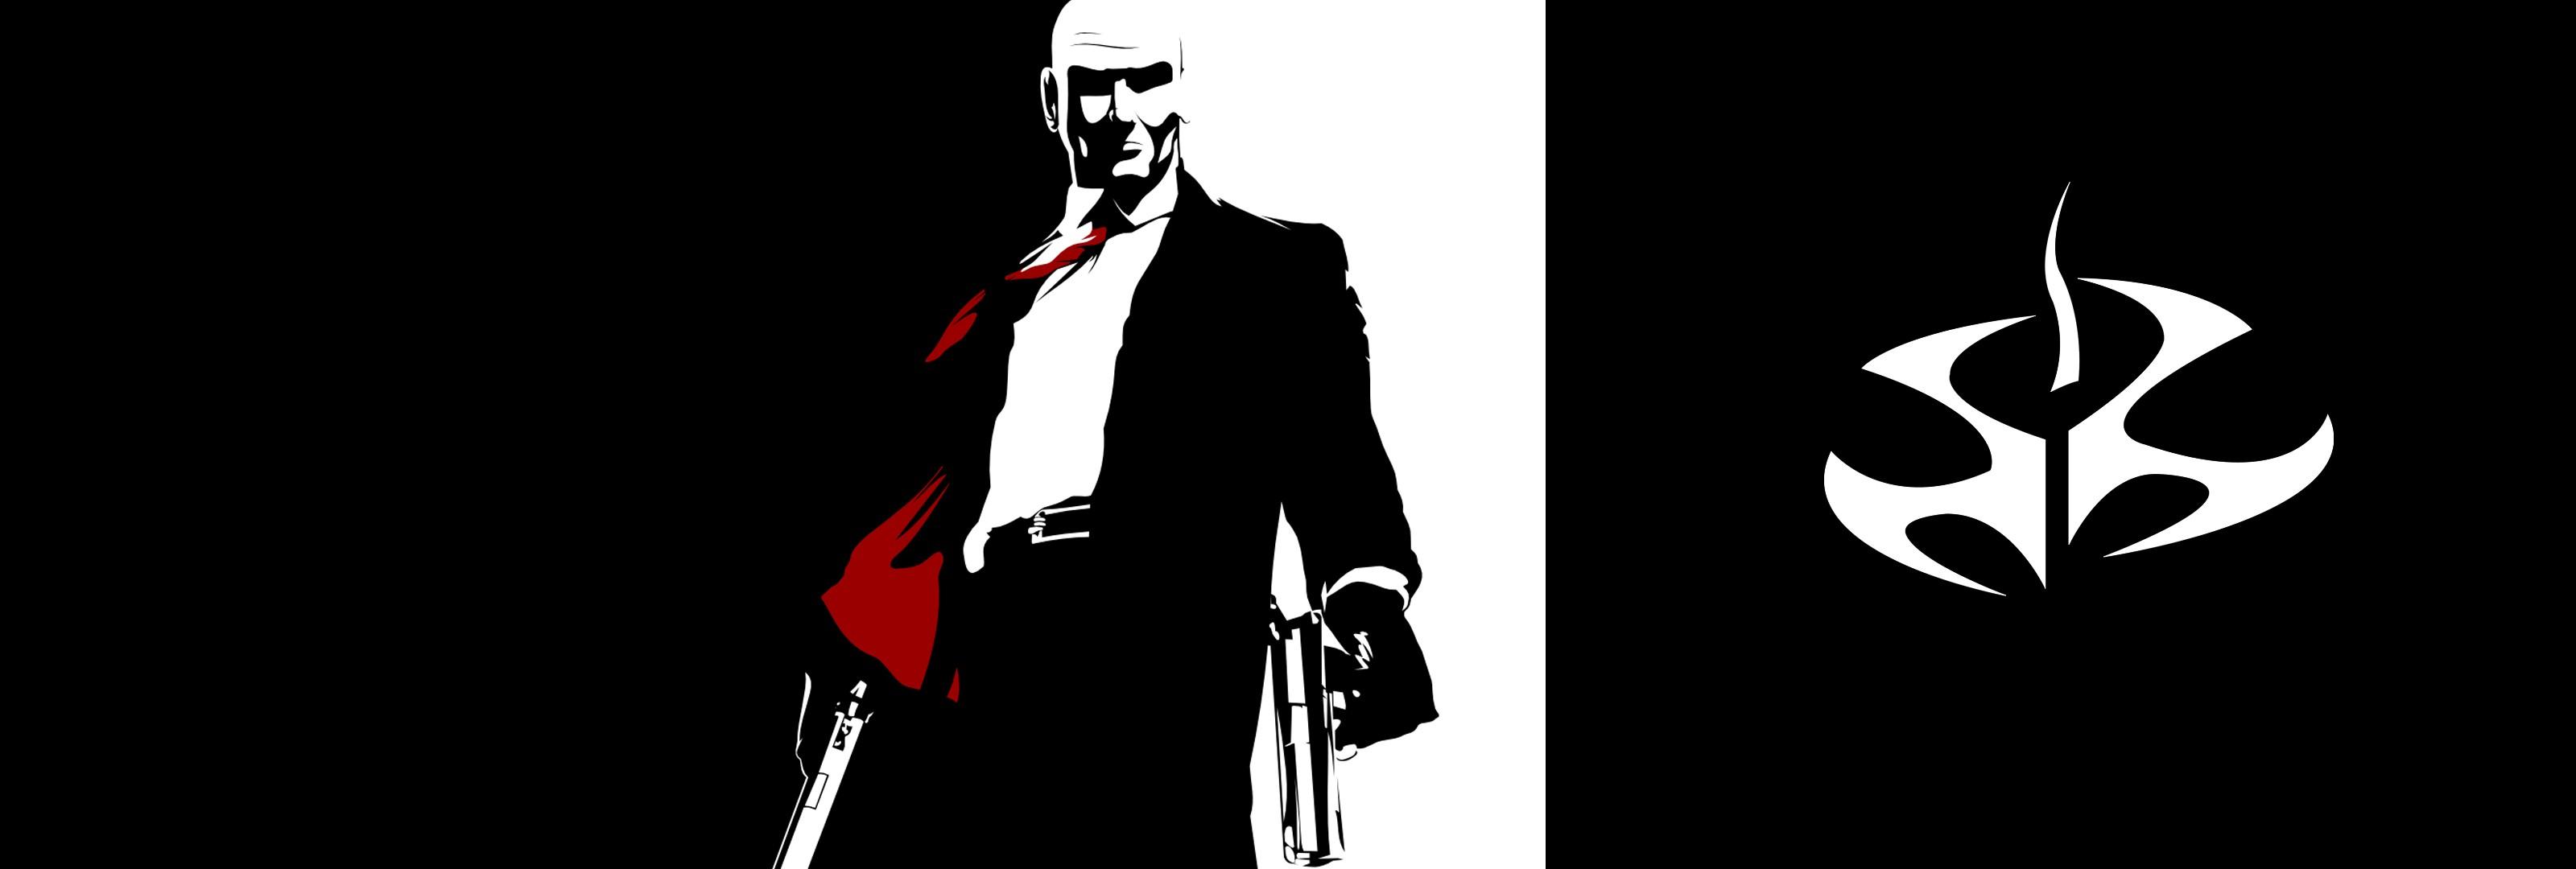 Popular Hitman Wallpaper 1920x1080